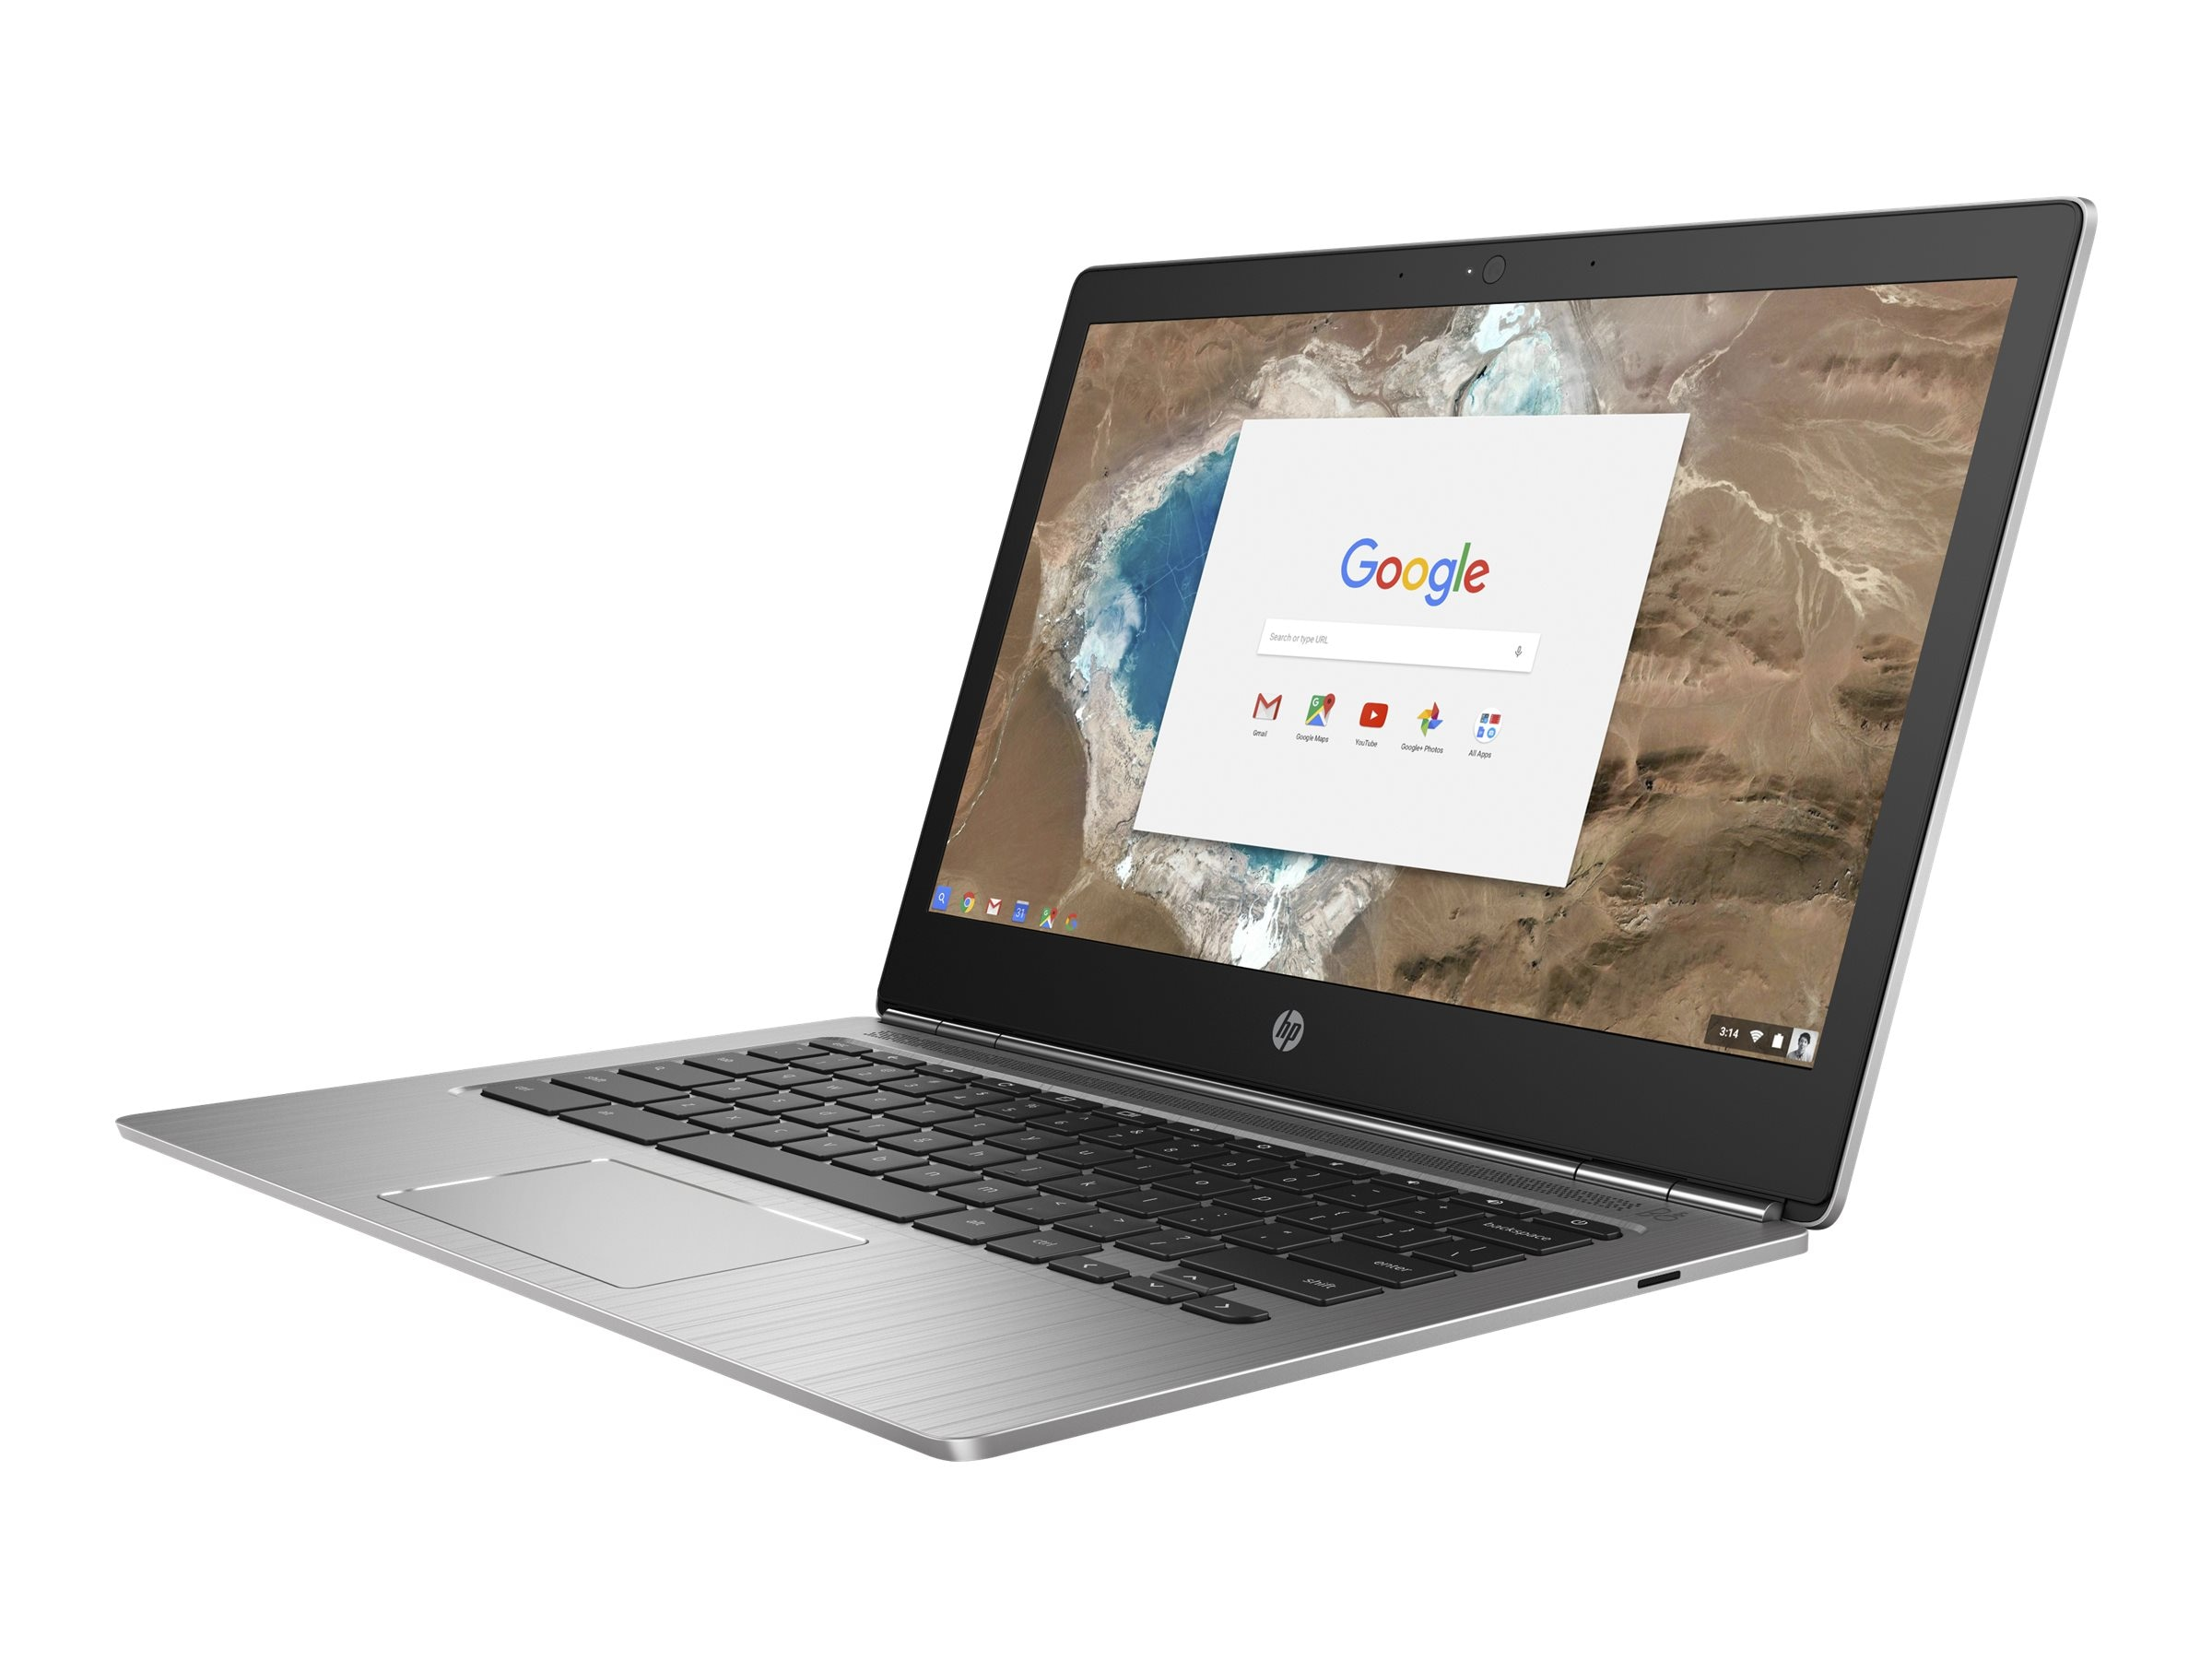 HP Chromebook 13 G1 1.2GHz Core m7 13.3in display